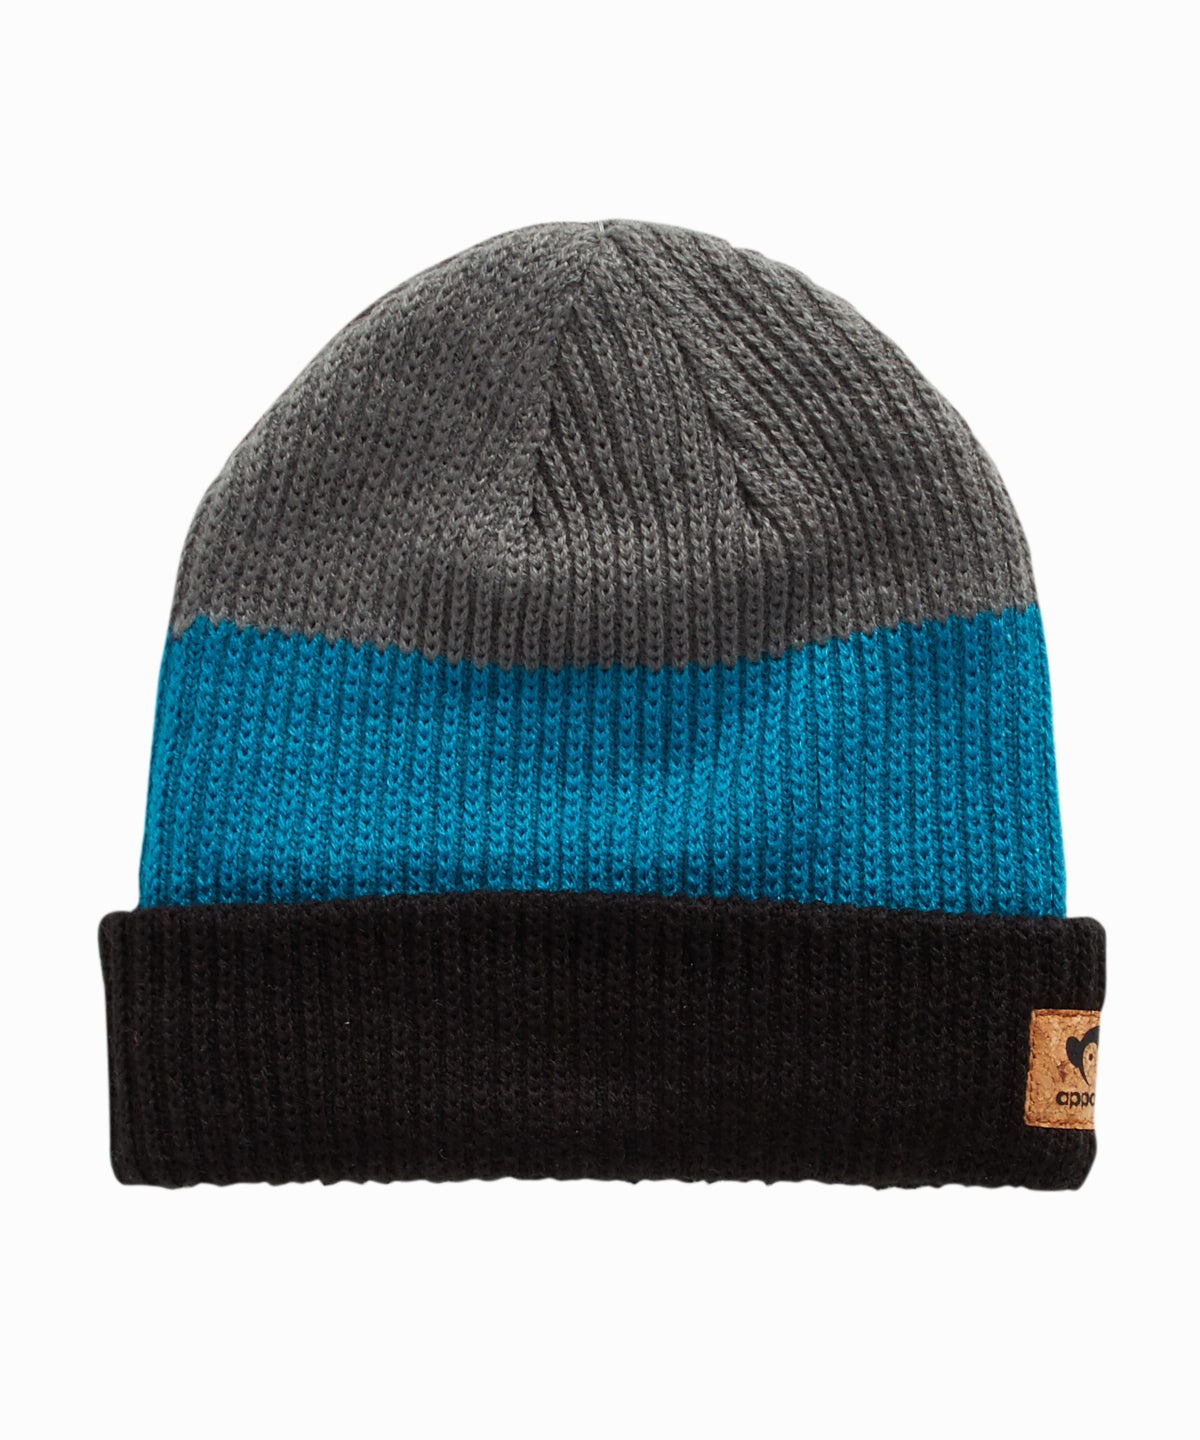 Muse Colorblock Knit Hat